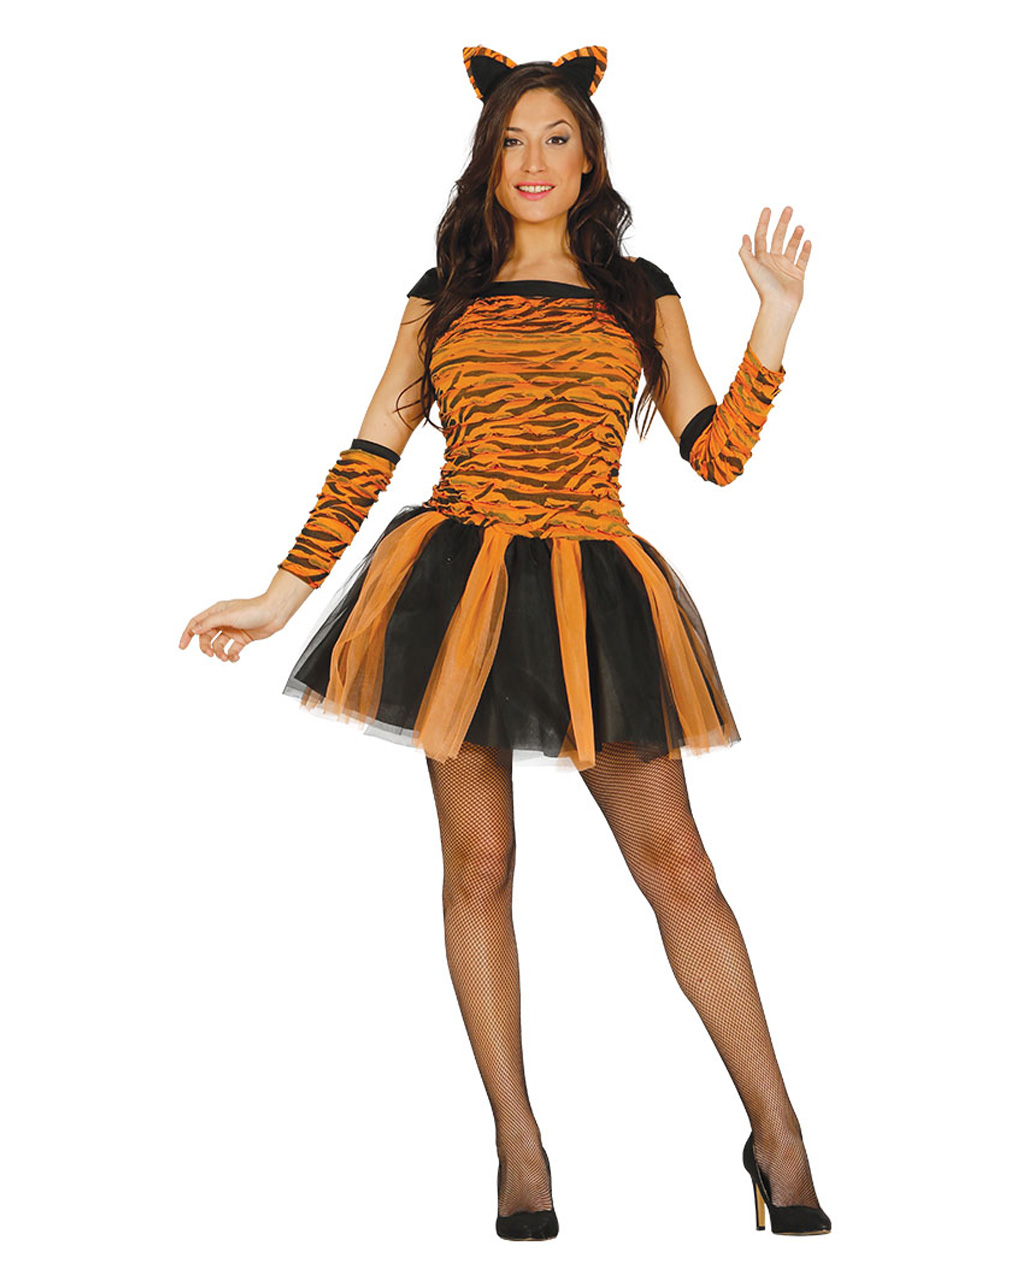 Tiger Costume With Accessories ...  sc 1 st  Horror-Shop.com & Tiger Costume With Accessories ? Sexy carnival costume | horror ...